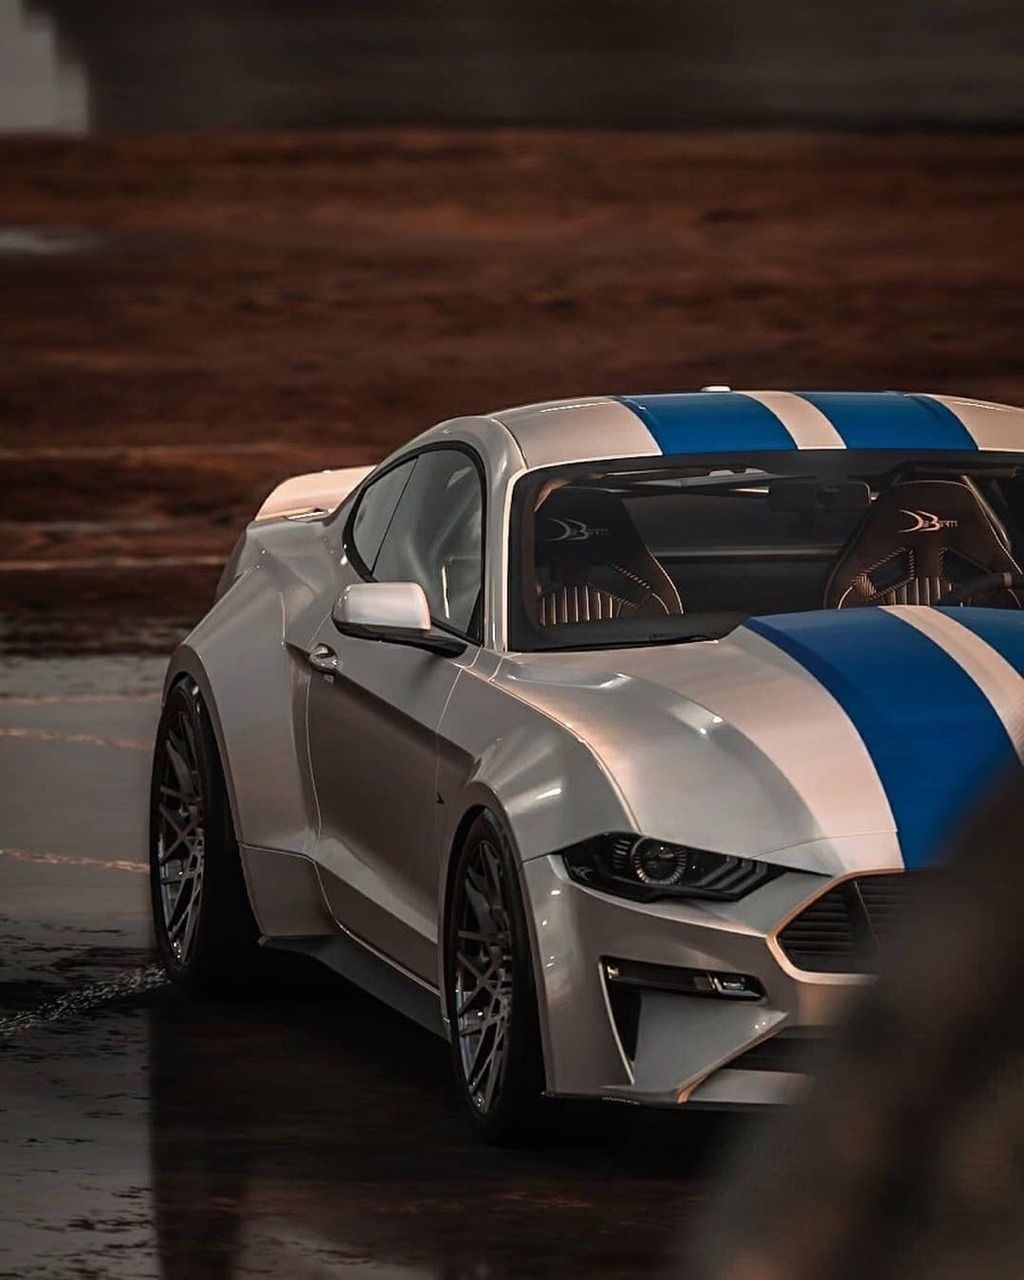 Widebody Mustang. #Forza 👍-👎 Photo By Kingty918